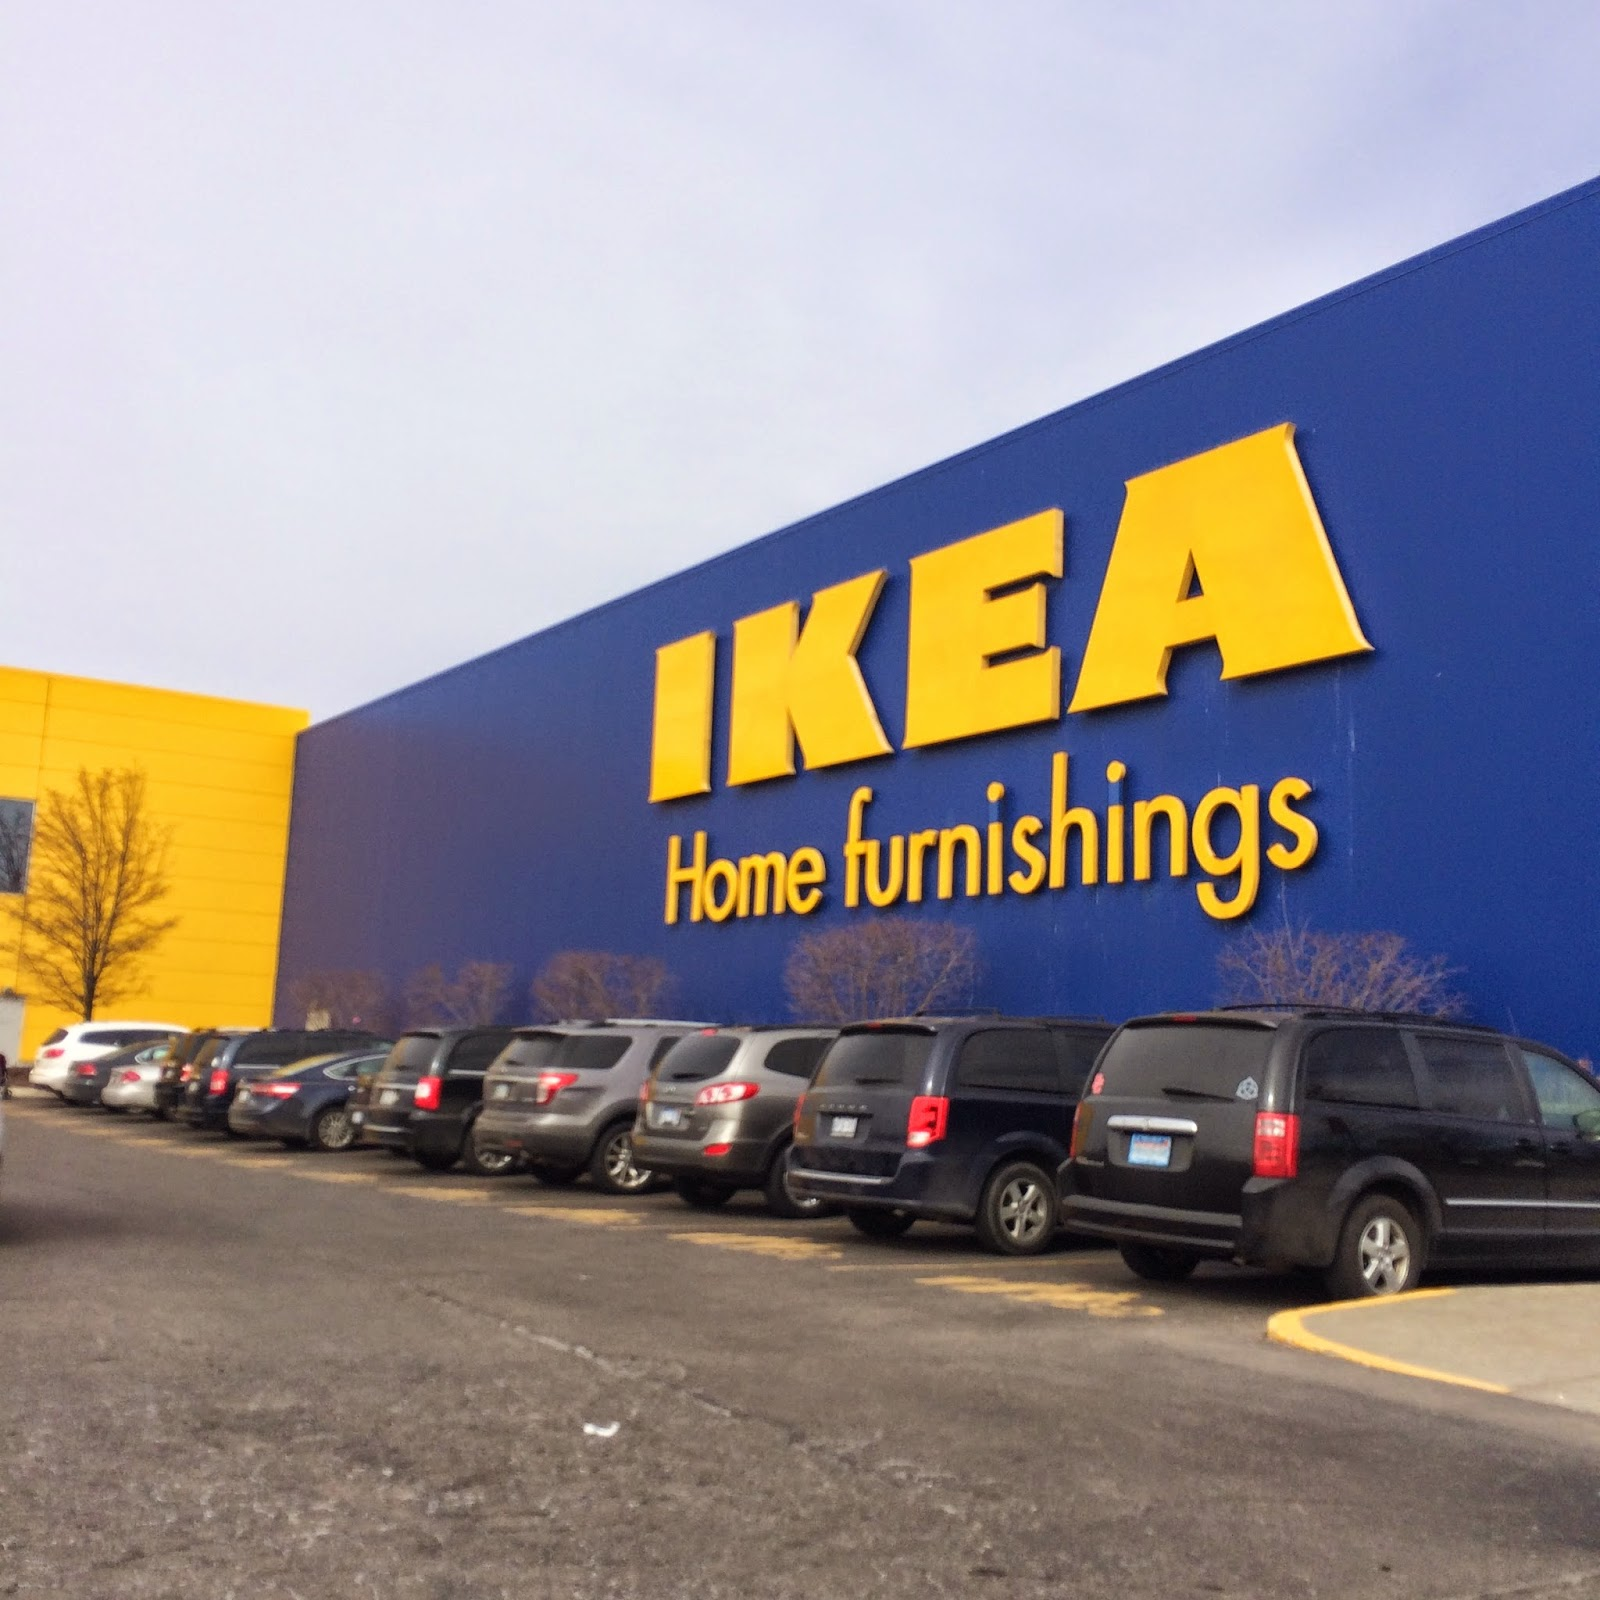 Our fabulous florence ikea for Ikea pittsburgh pennsylvanie